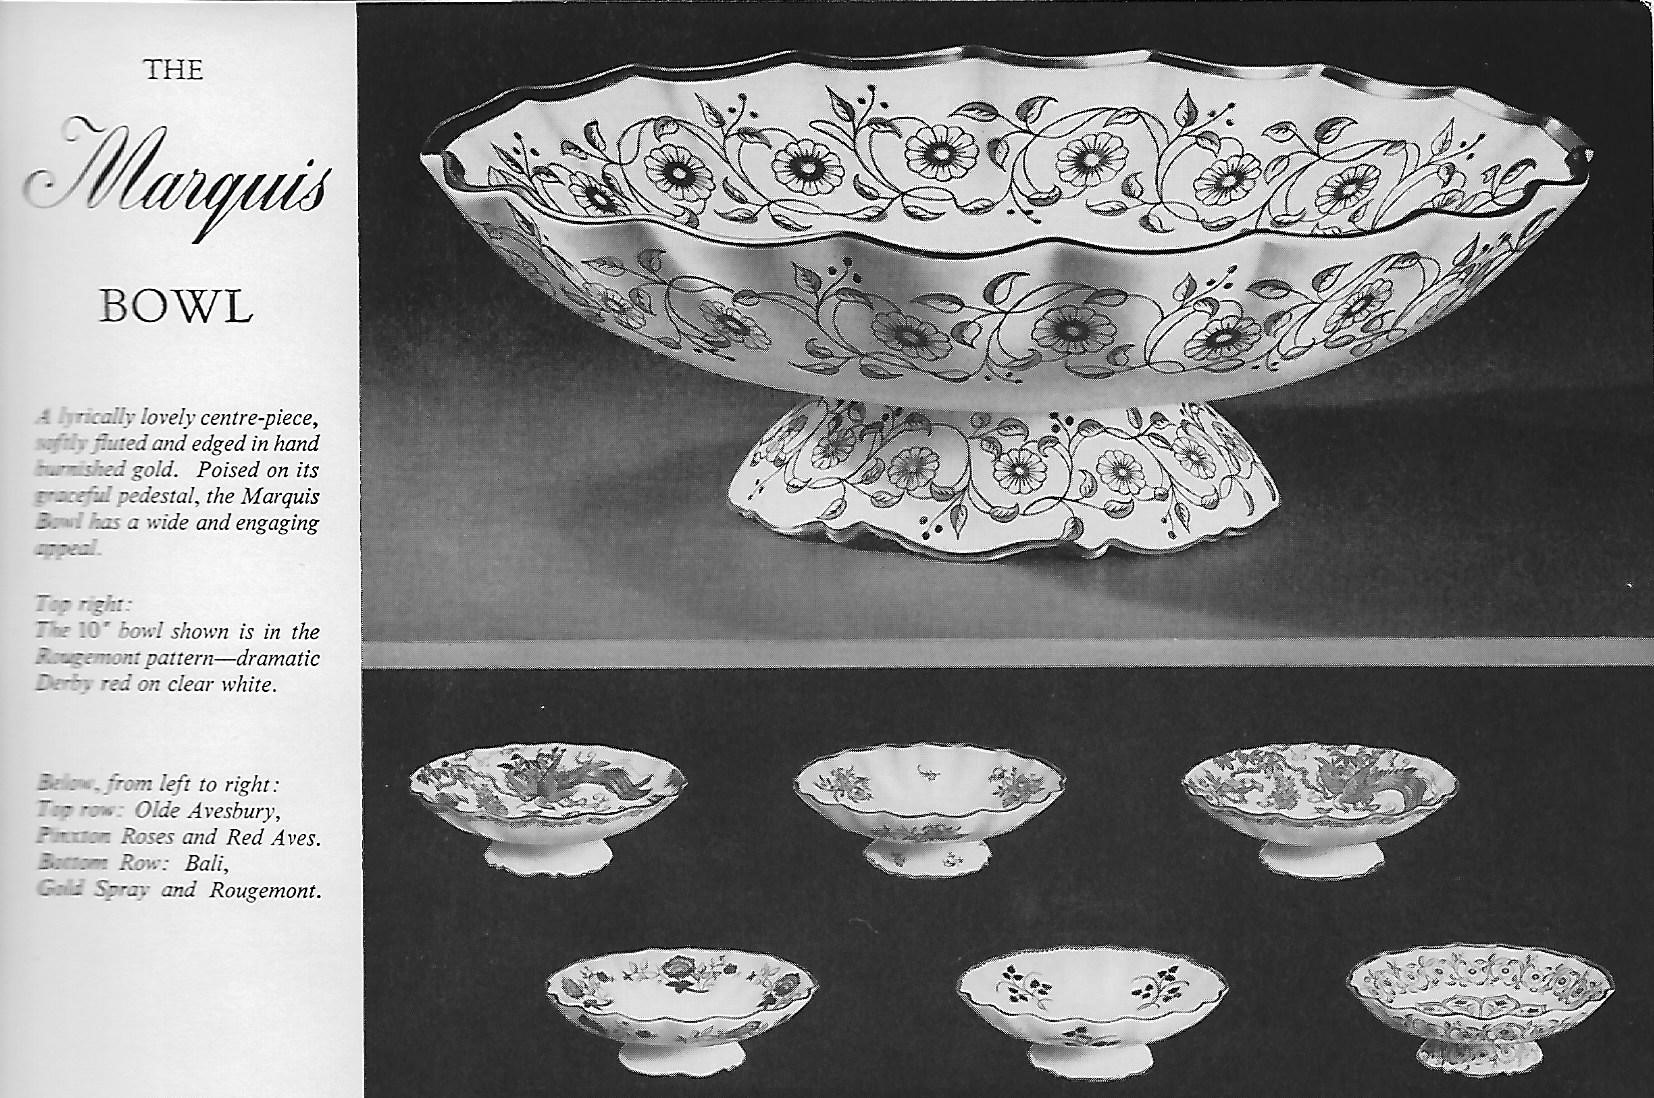 royal-crown-derby-united-states-illustrated-catalogue-1959-marquis-bowl